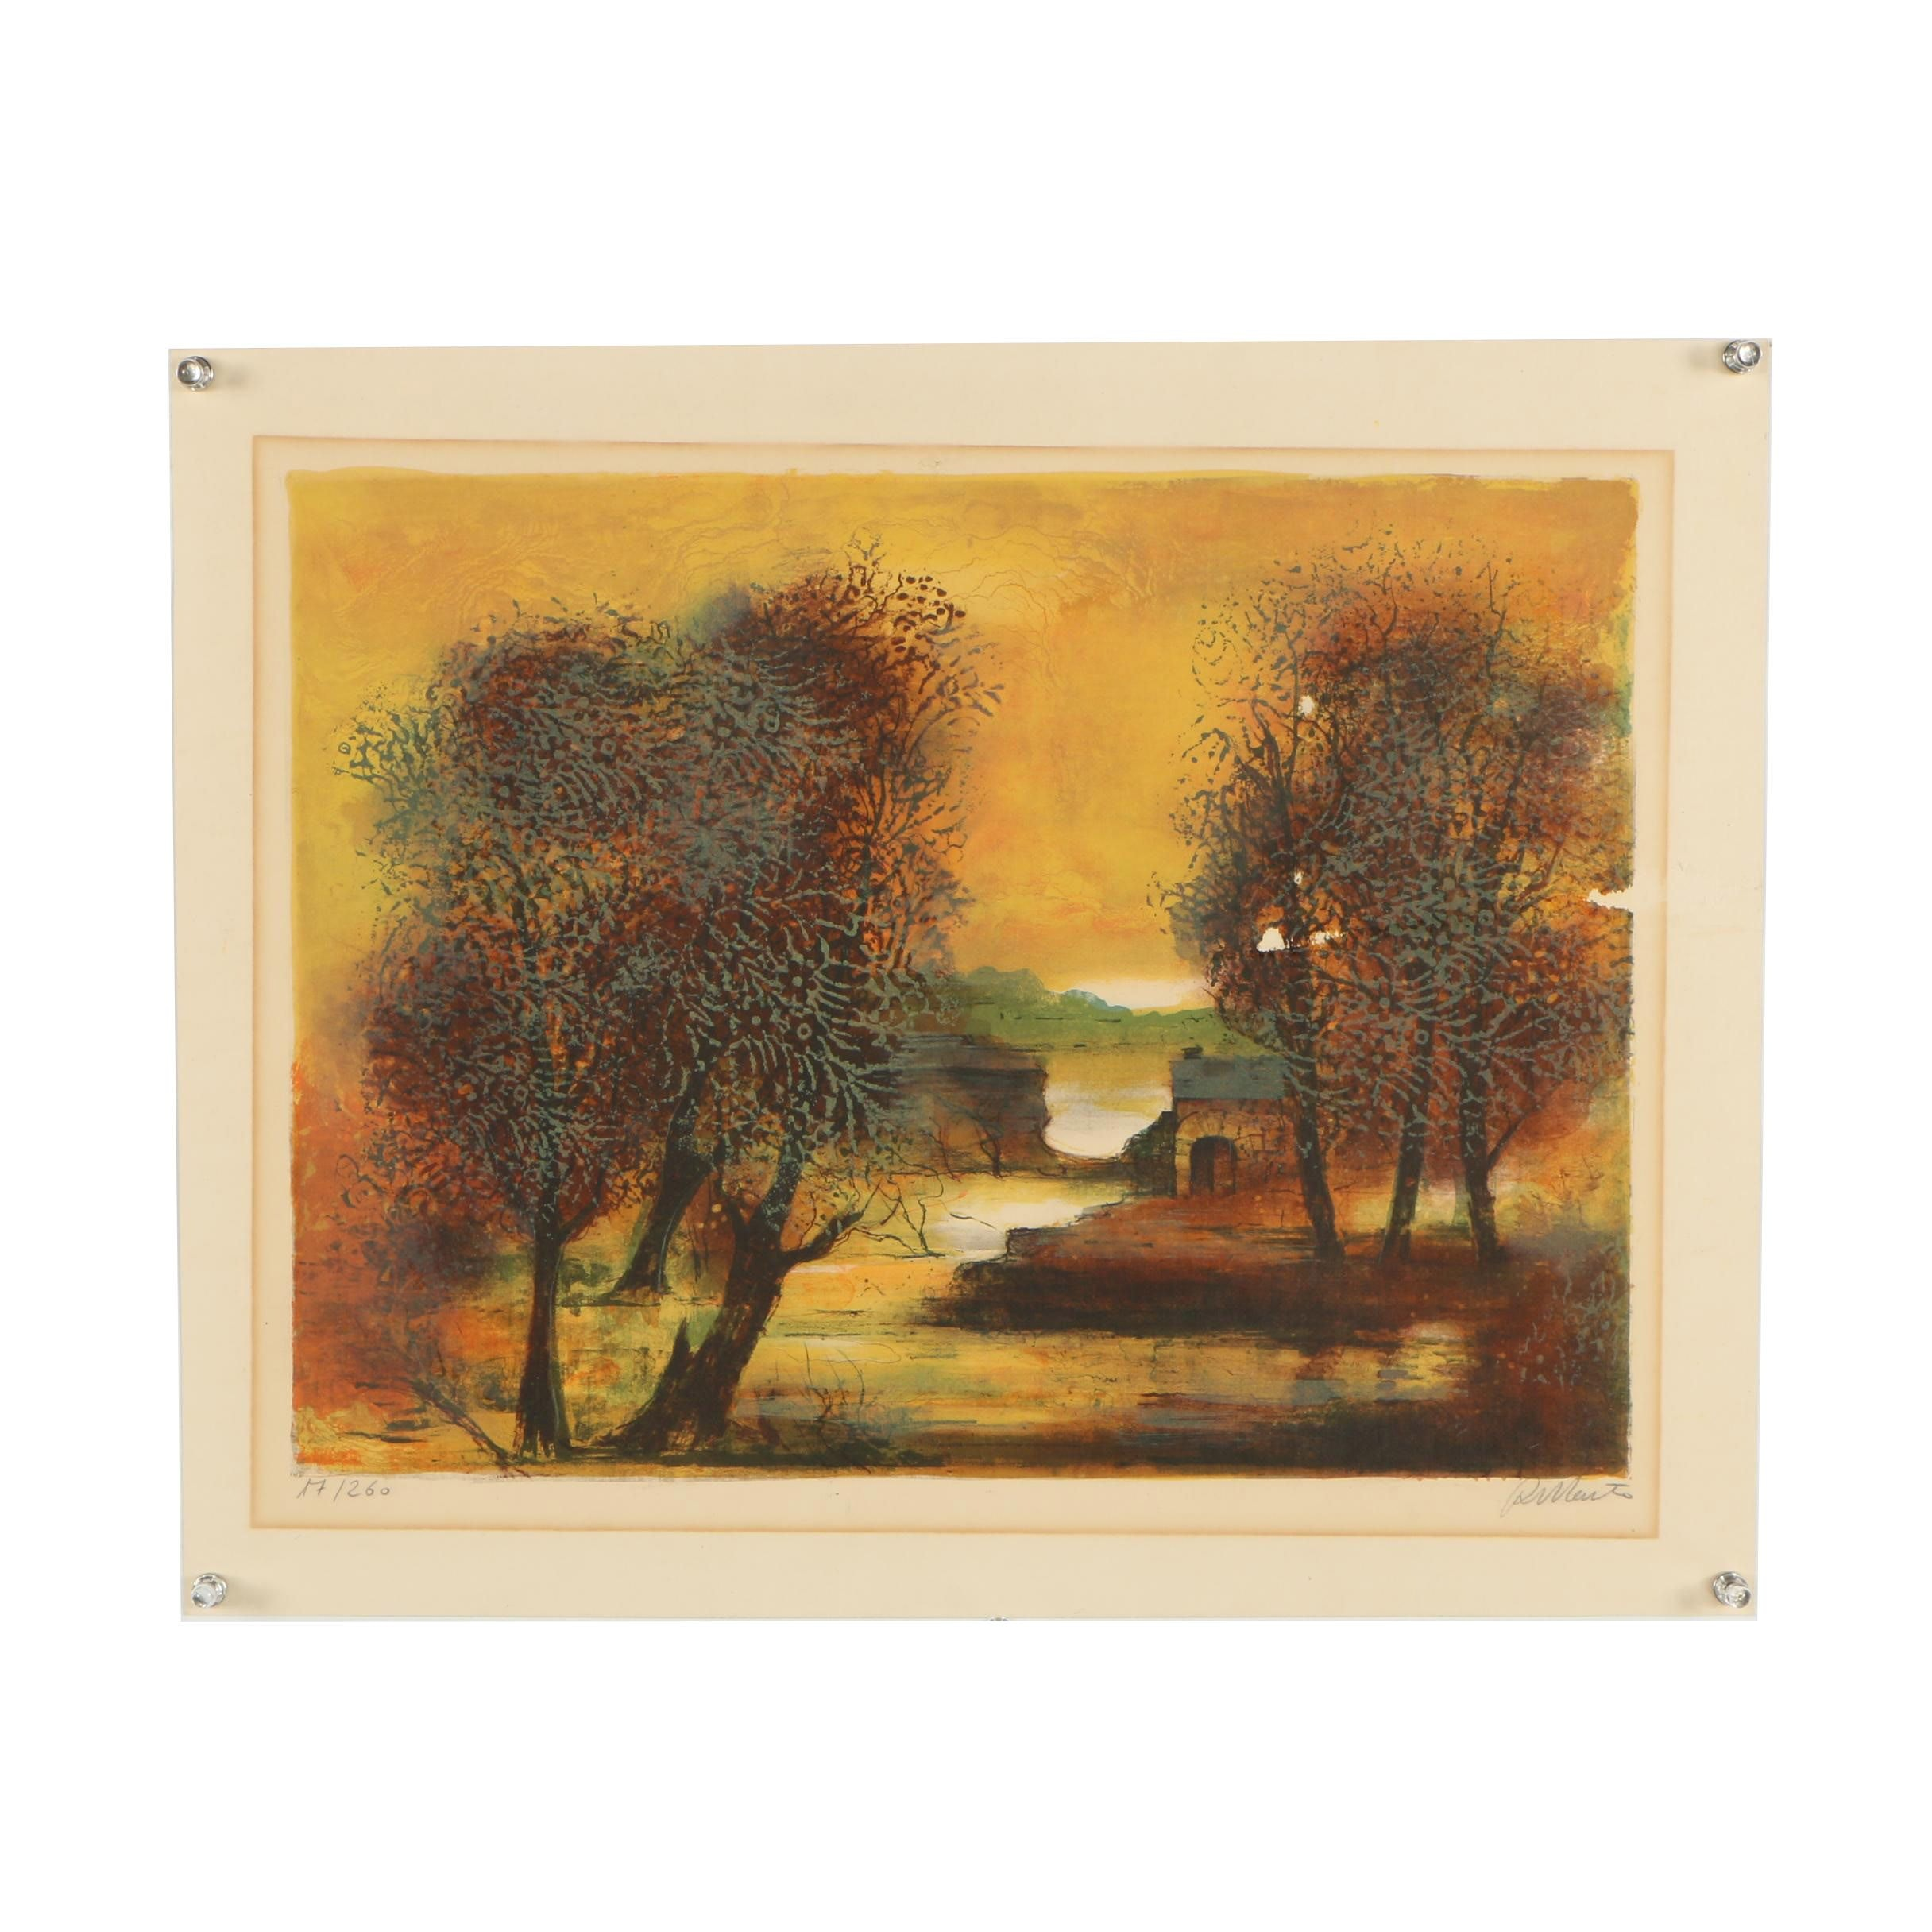 Colored Lithograph Depicting Vibrant Autumnal Trees